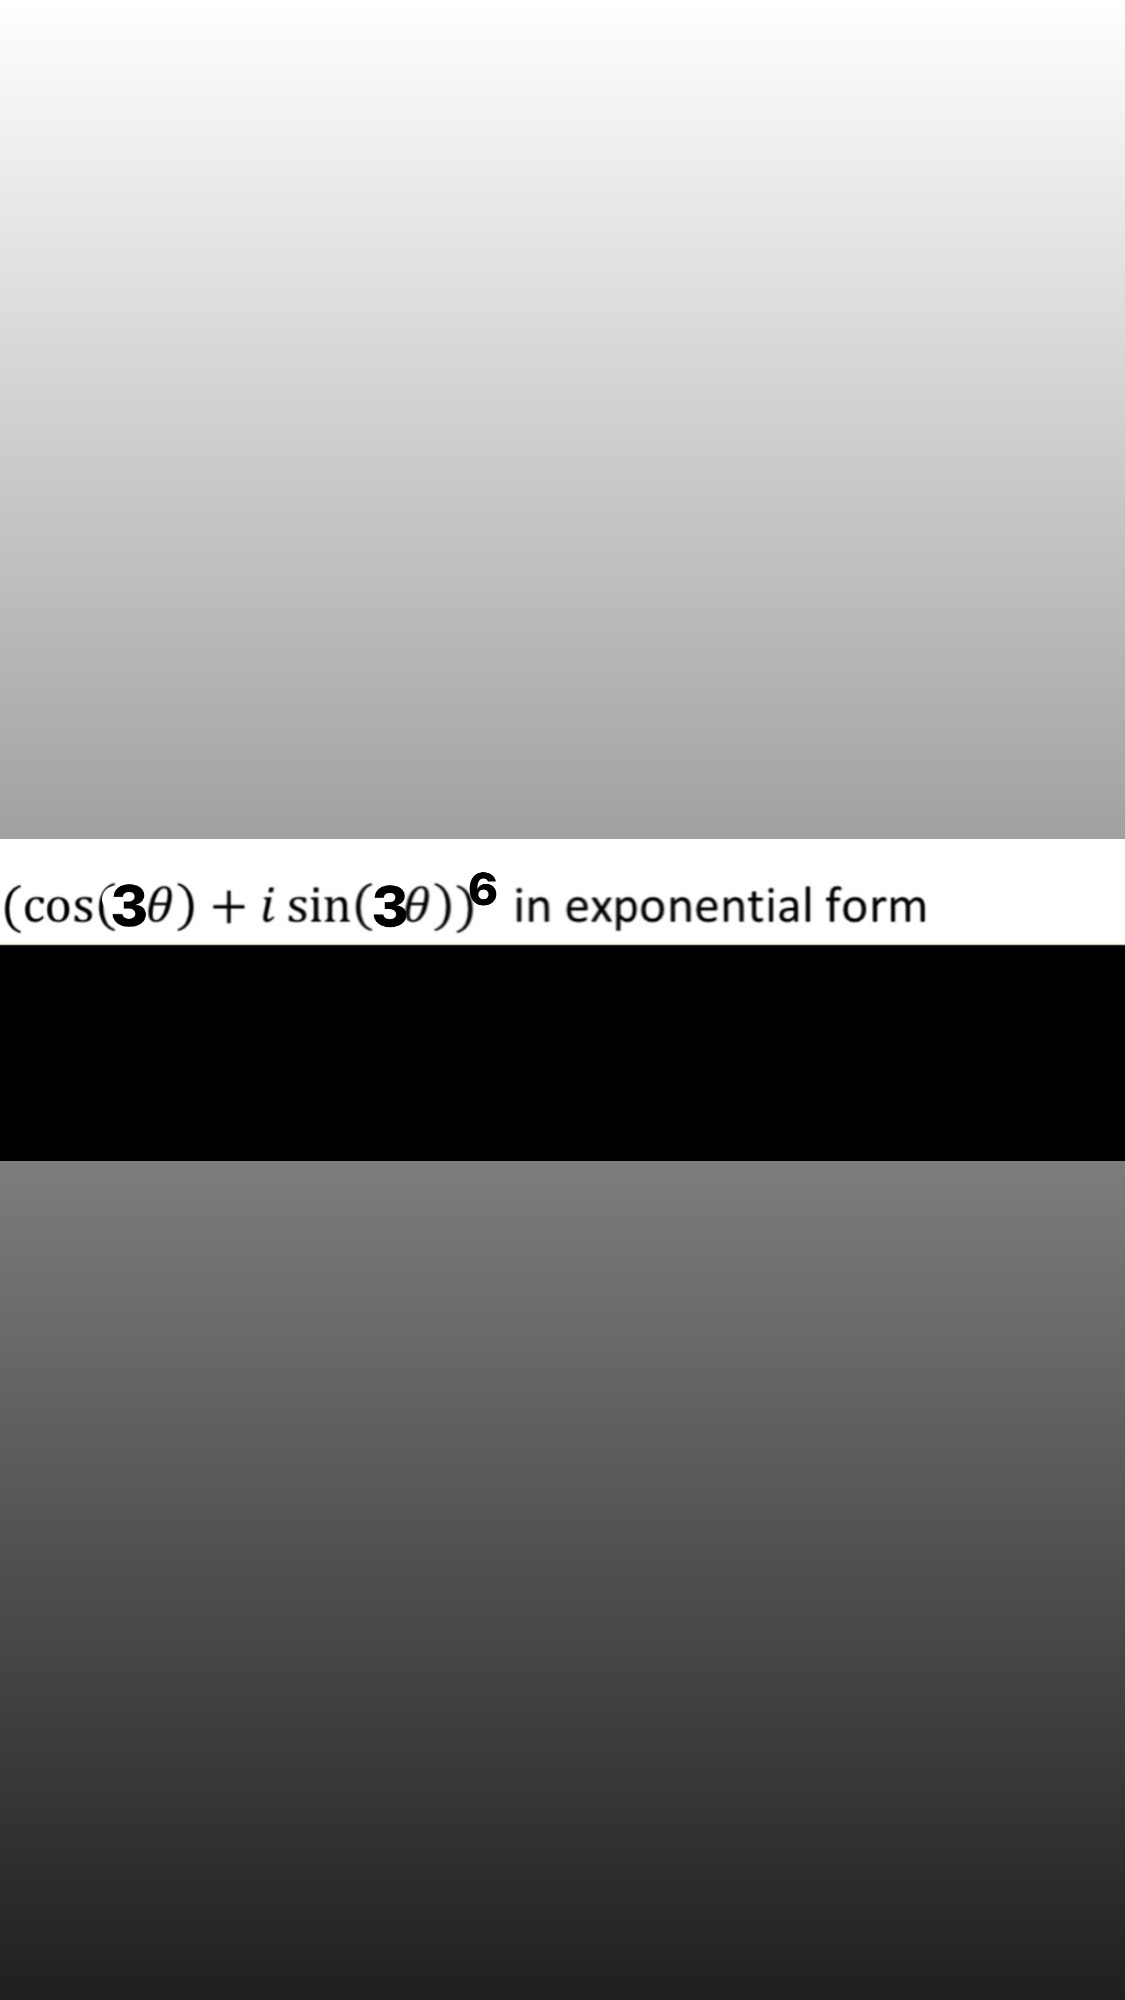 (cos(30) + i sin(30))6 in exponential form